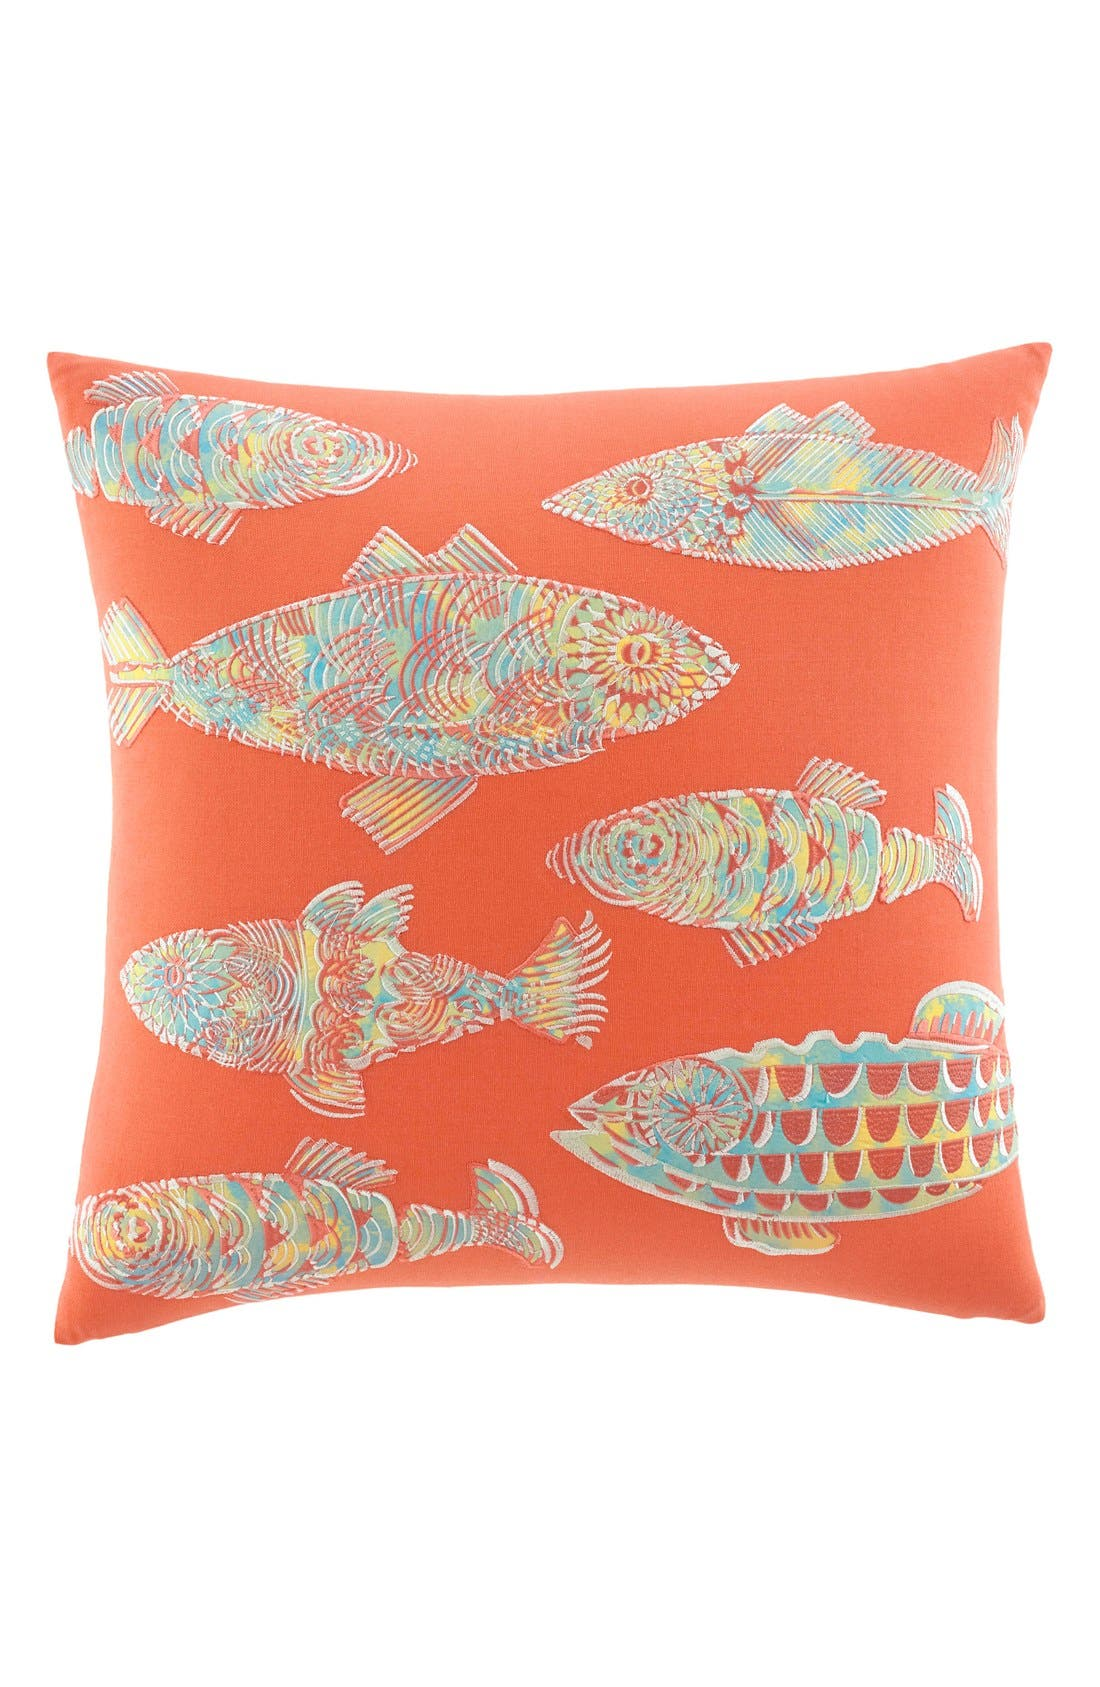 Tommy Bahama 'Batic Fish' Pillow